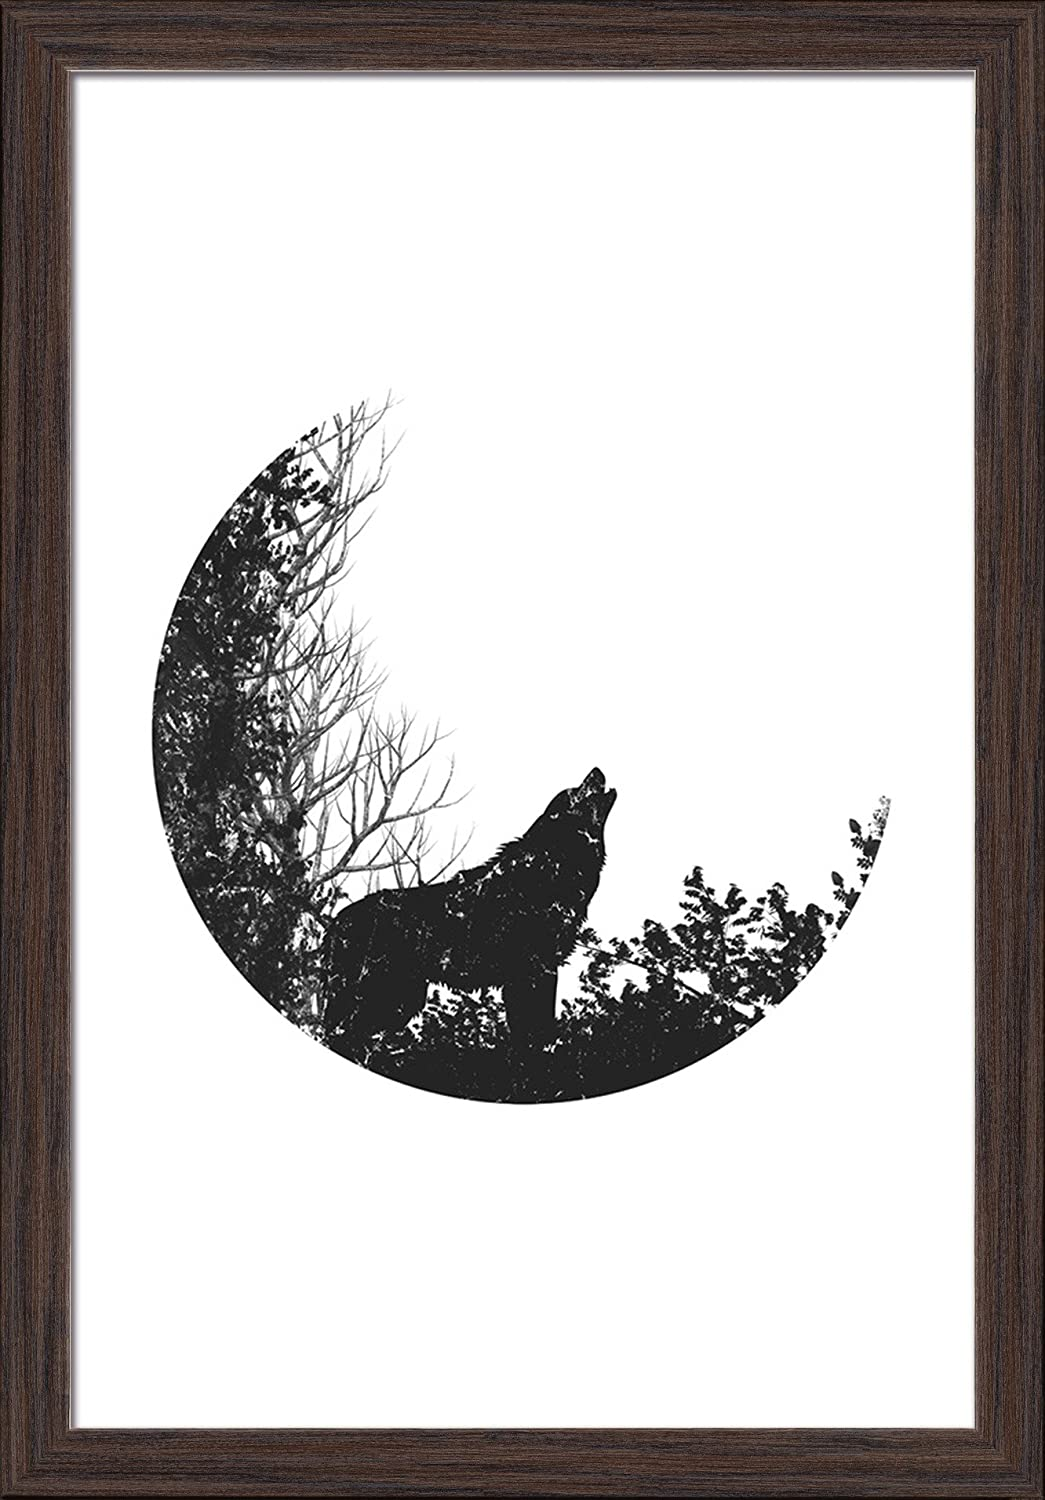 24x36 Giclee Art Print, Gallery Framed, Espresso Wood Patterned Bear Family